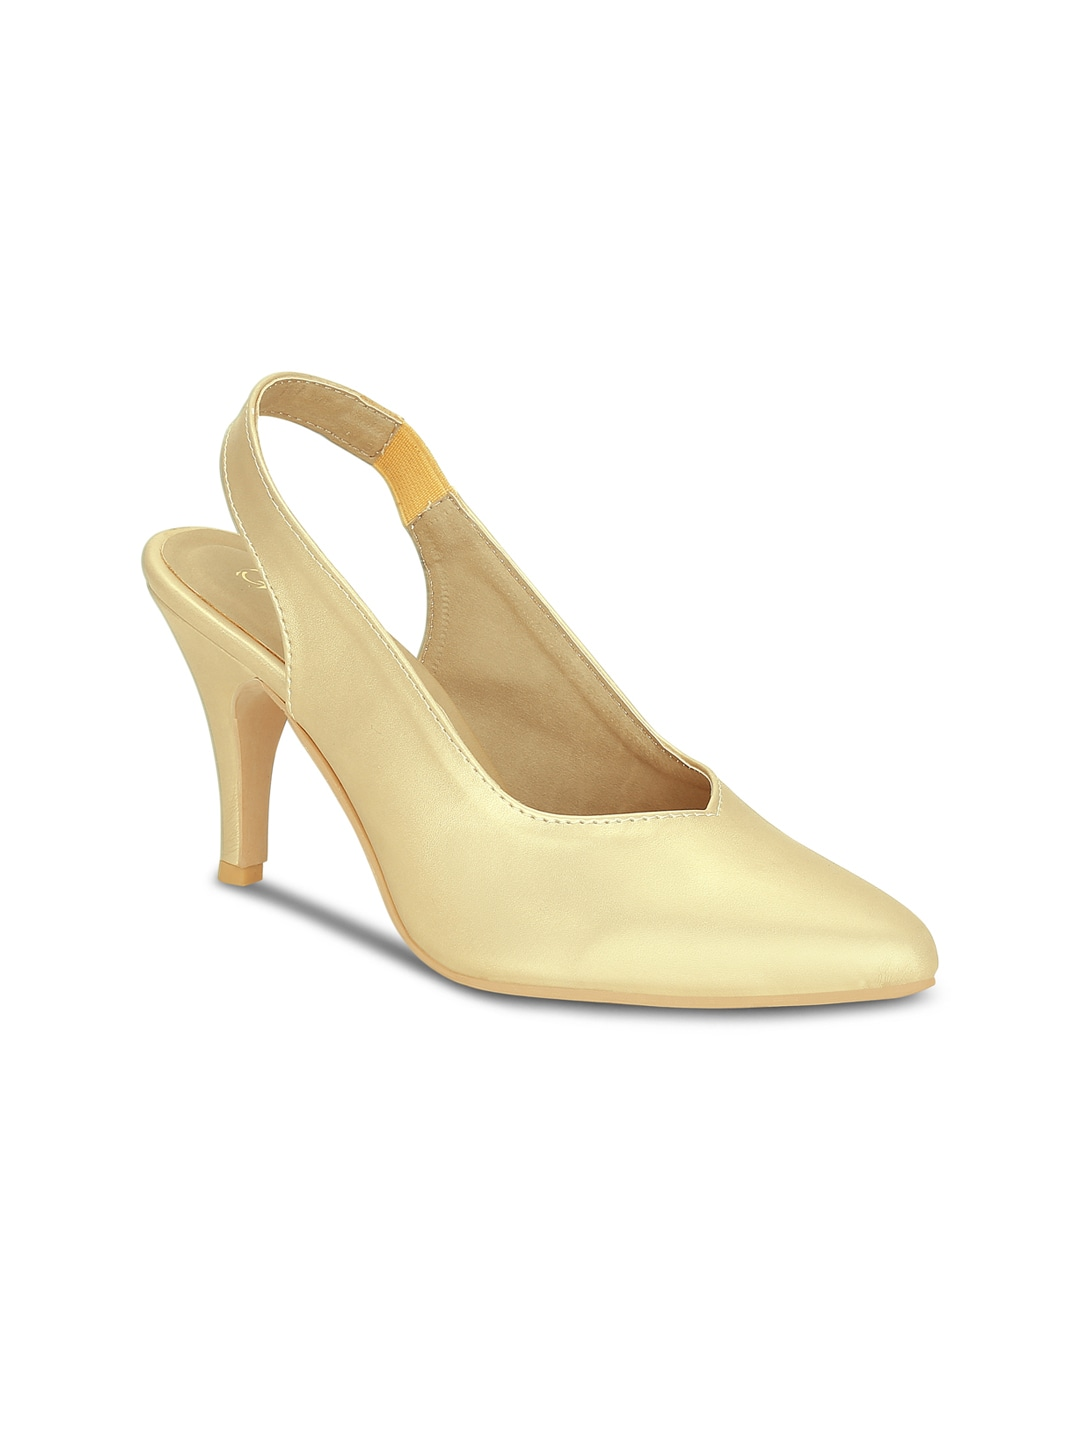 Gold-Toned Solid Heels